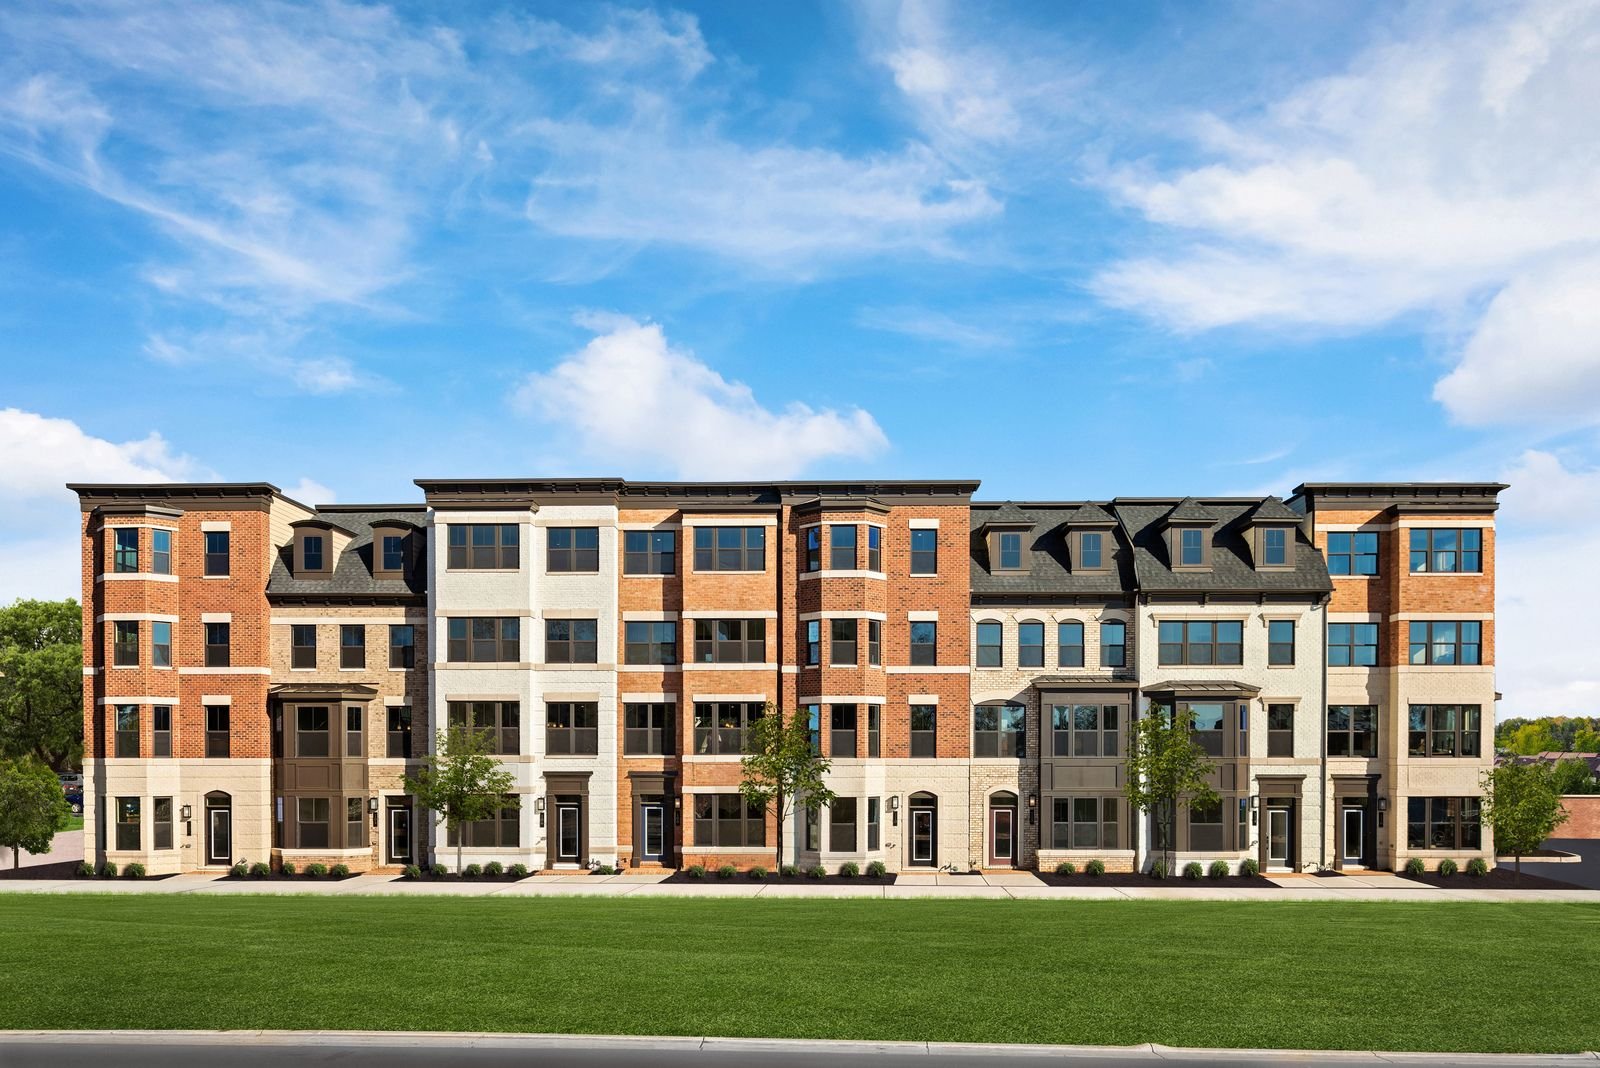 STATELY NV TOWNHOMES IN THE TOWN OF VIENNA